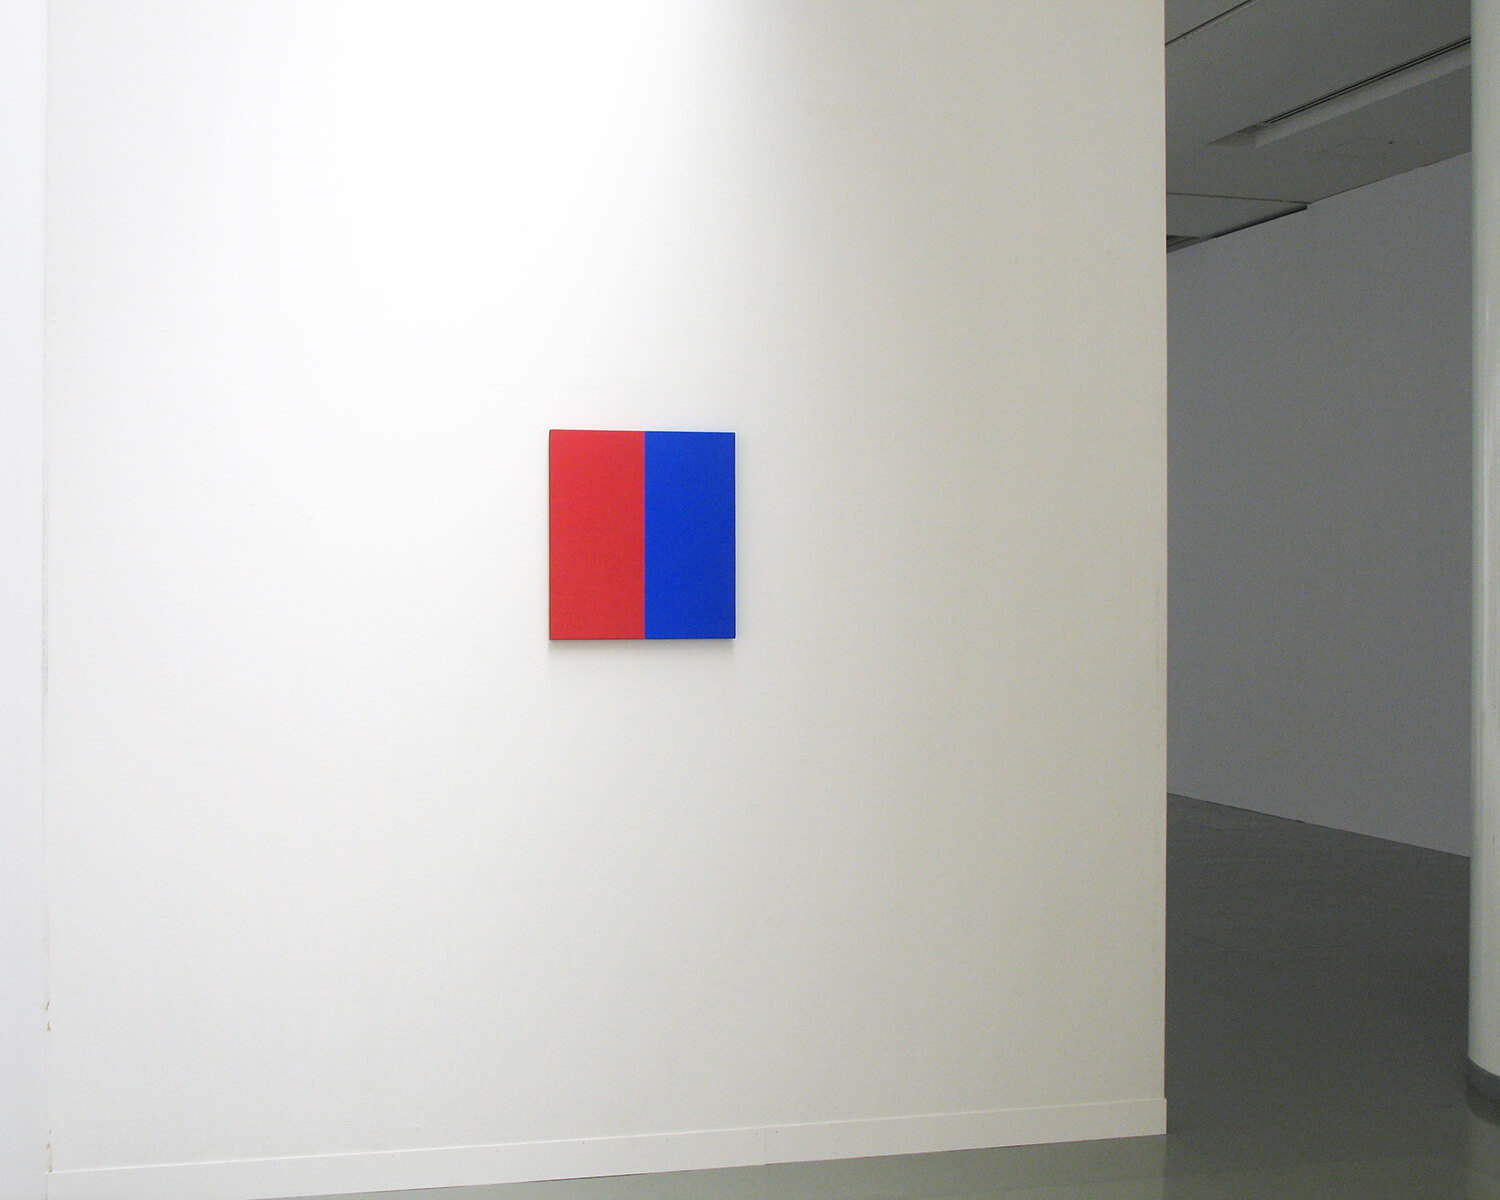 red and blue 1962<br>acrylic, pigment on canvas (1 panel), 53.5 x 48.5 cm / courtesy of Gallery Yamaguchi, Osaka